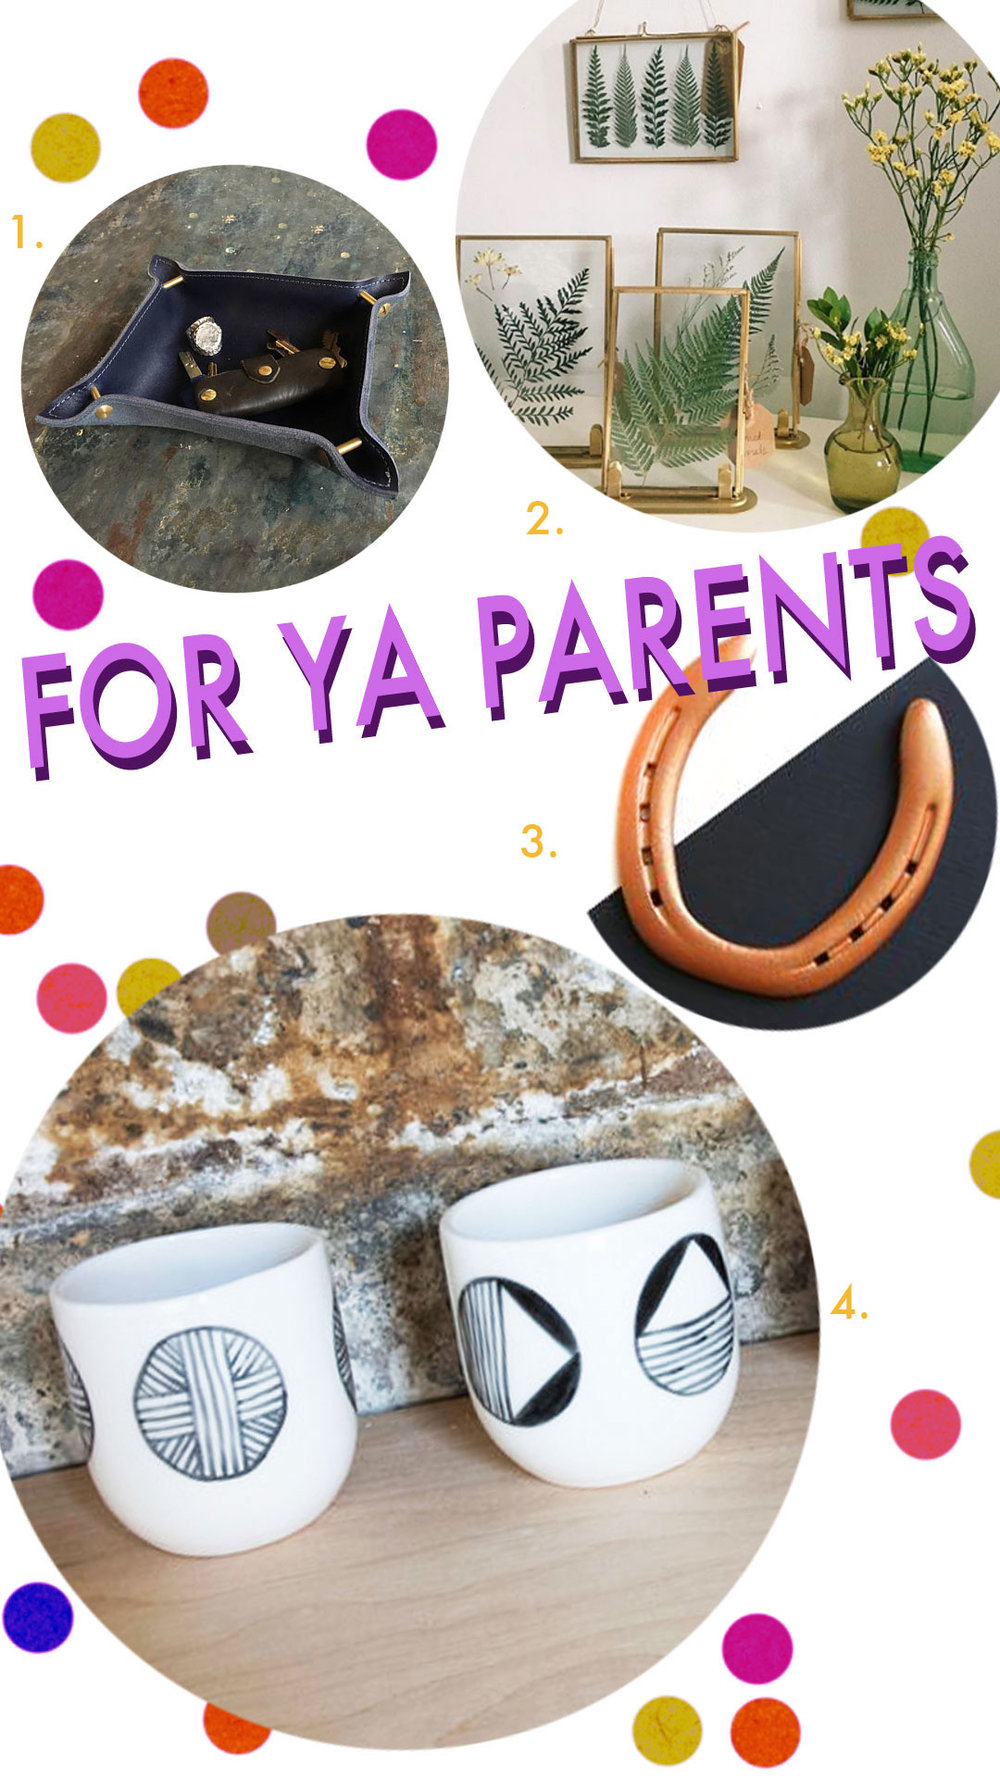 Parents-Gifts-blog.jpg